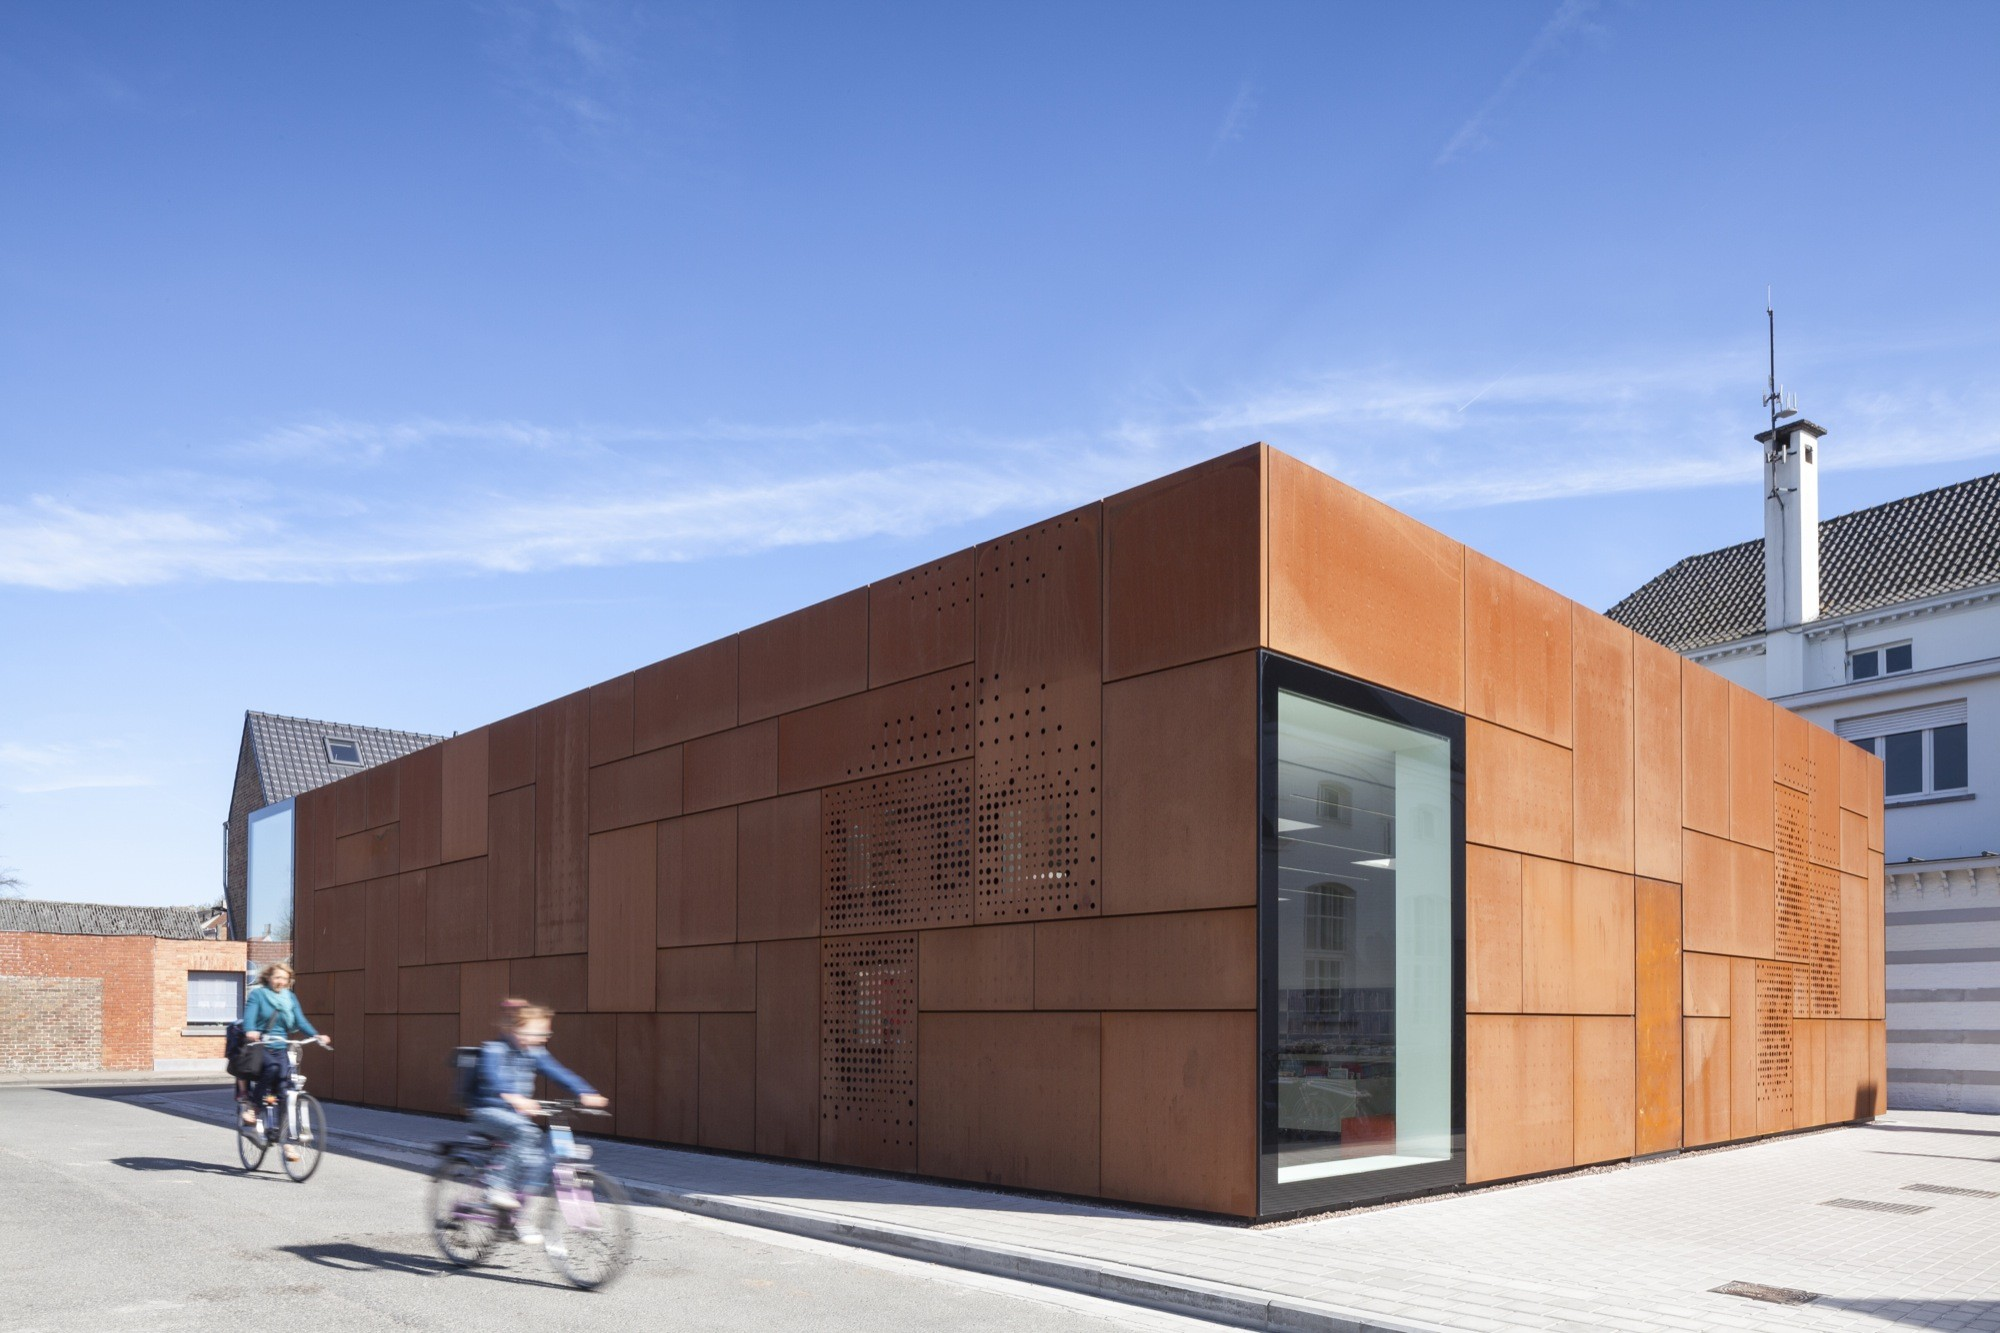 City Library Bruges / Studio Farris Architects, © Tim Van de Velde